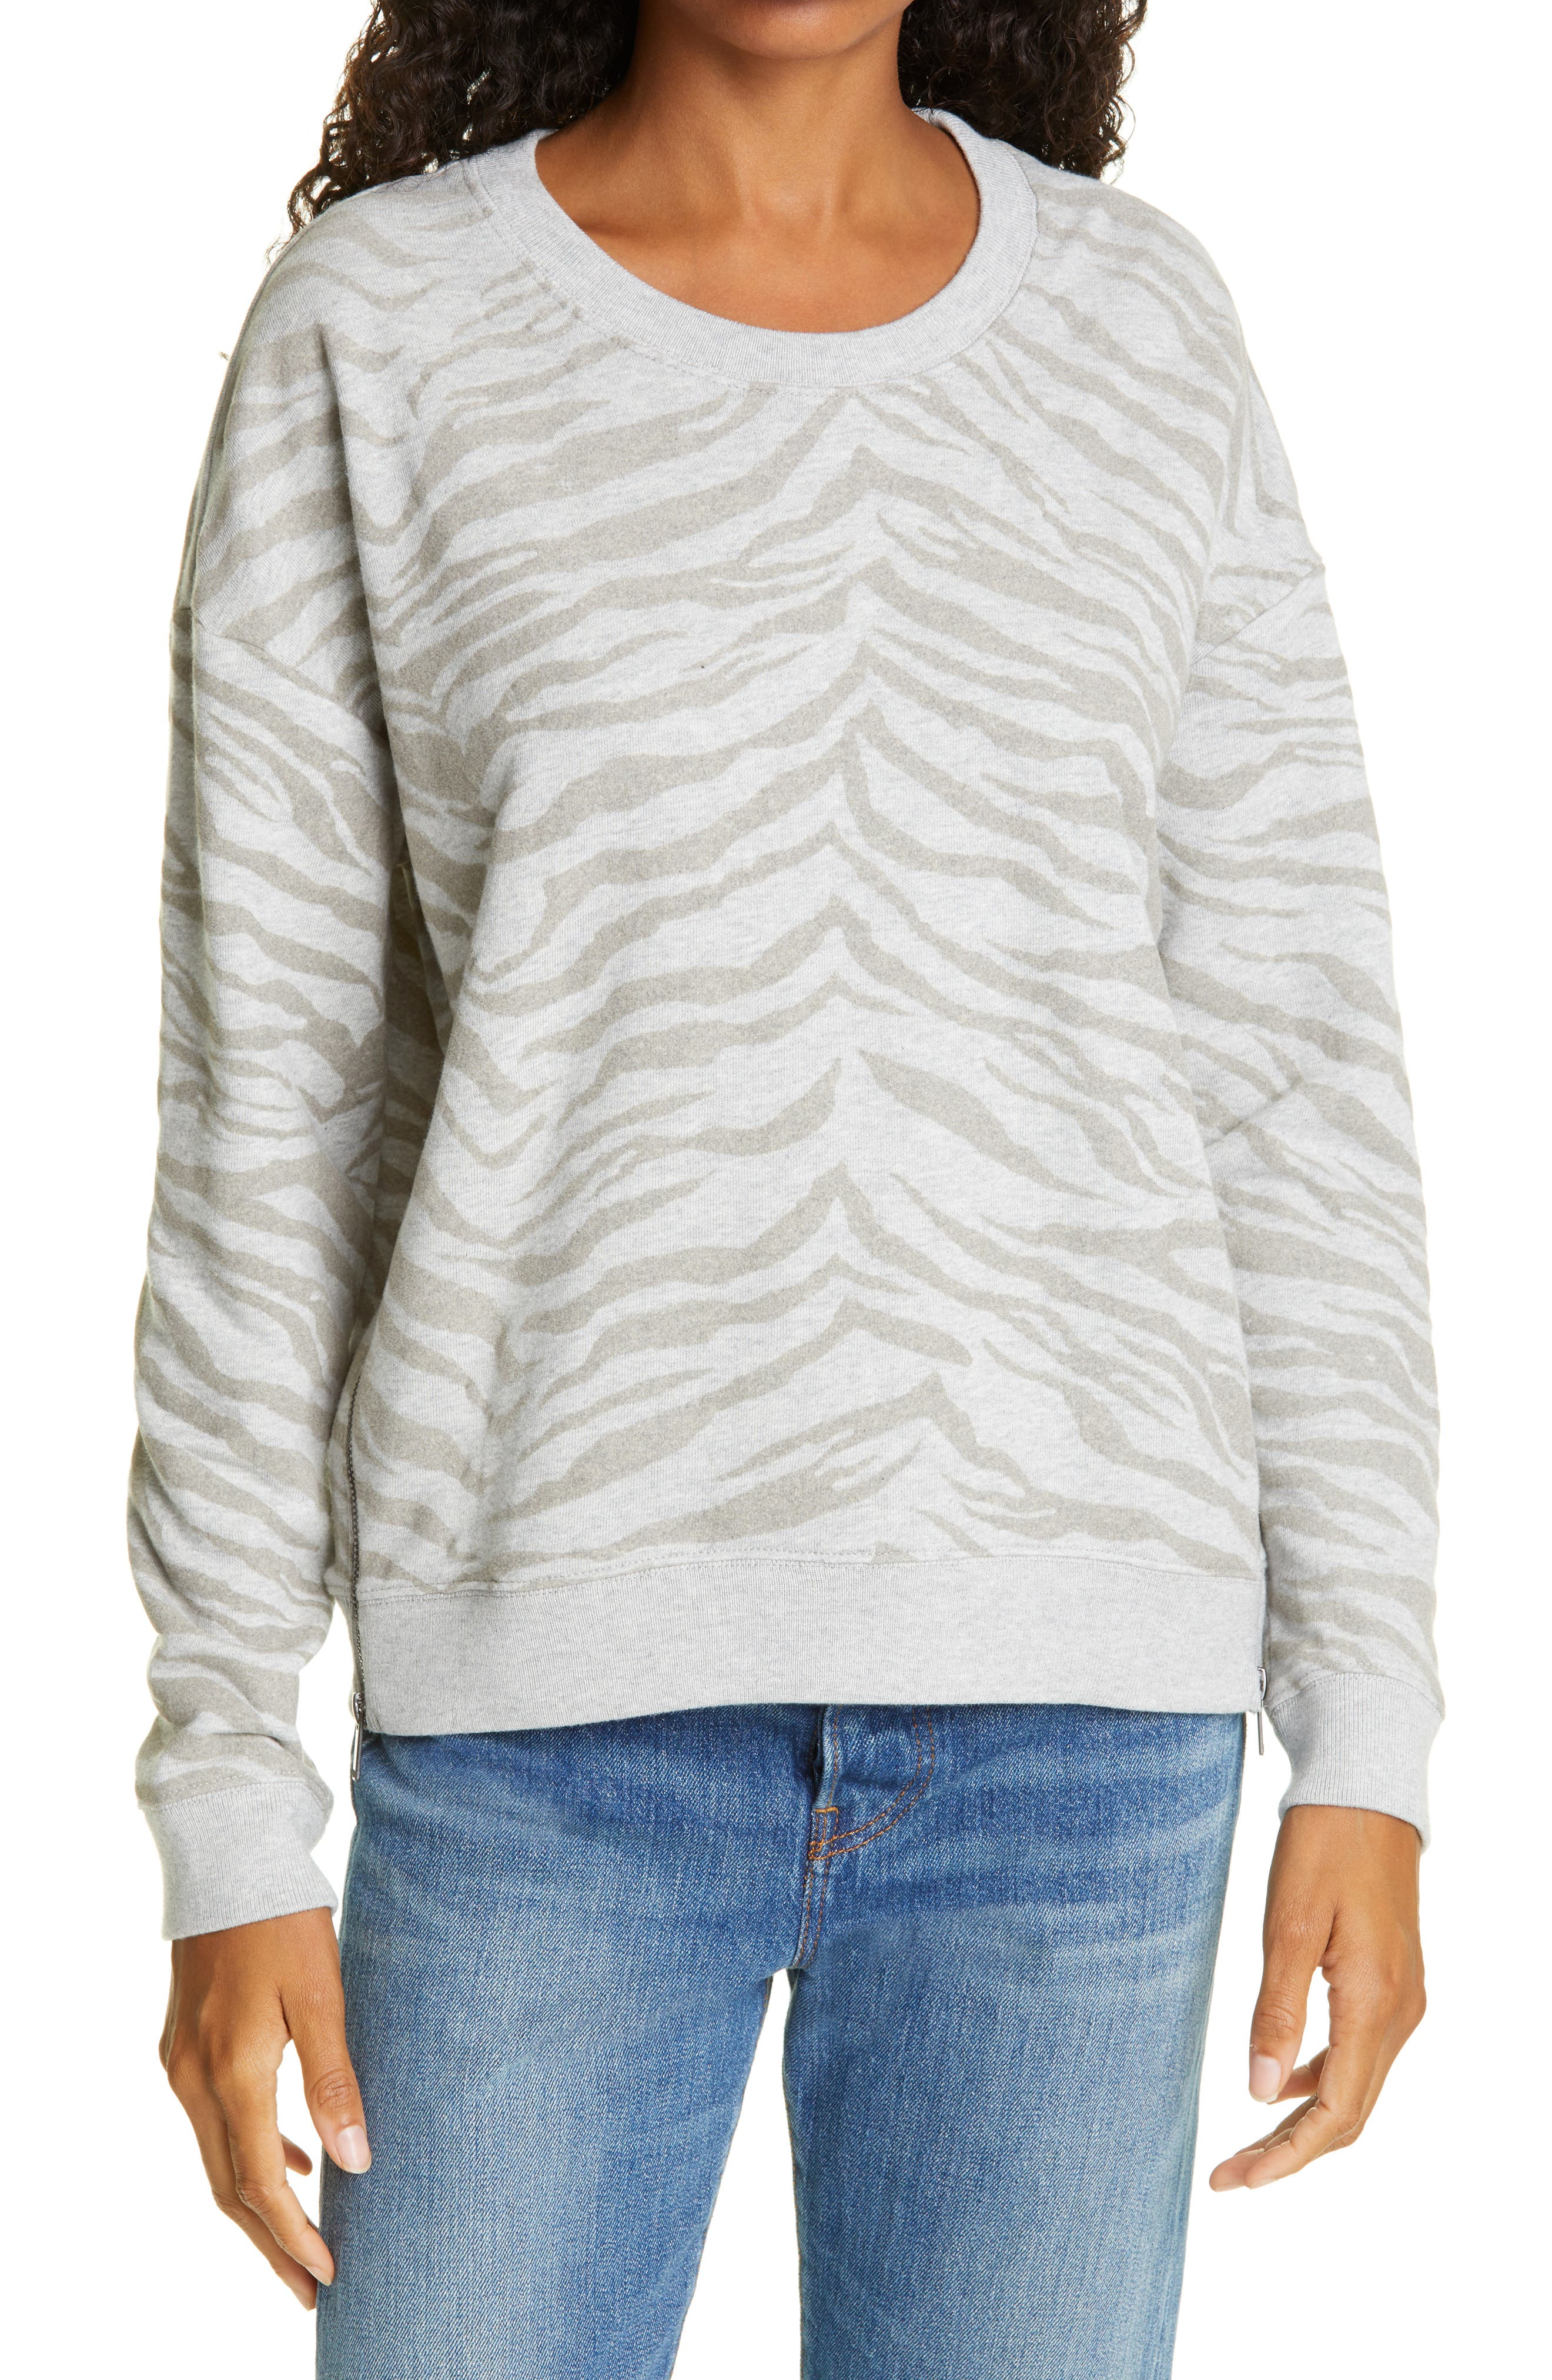 Spotted Zebra Long-Sleeve Cozy Tunic Tops Fille